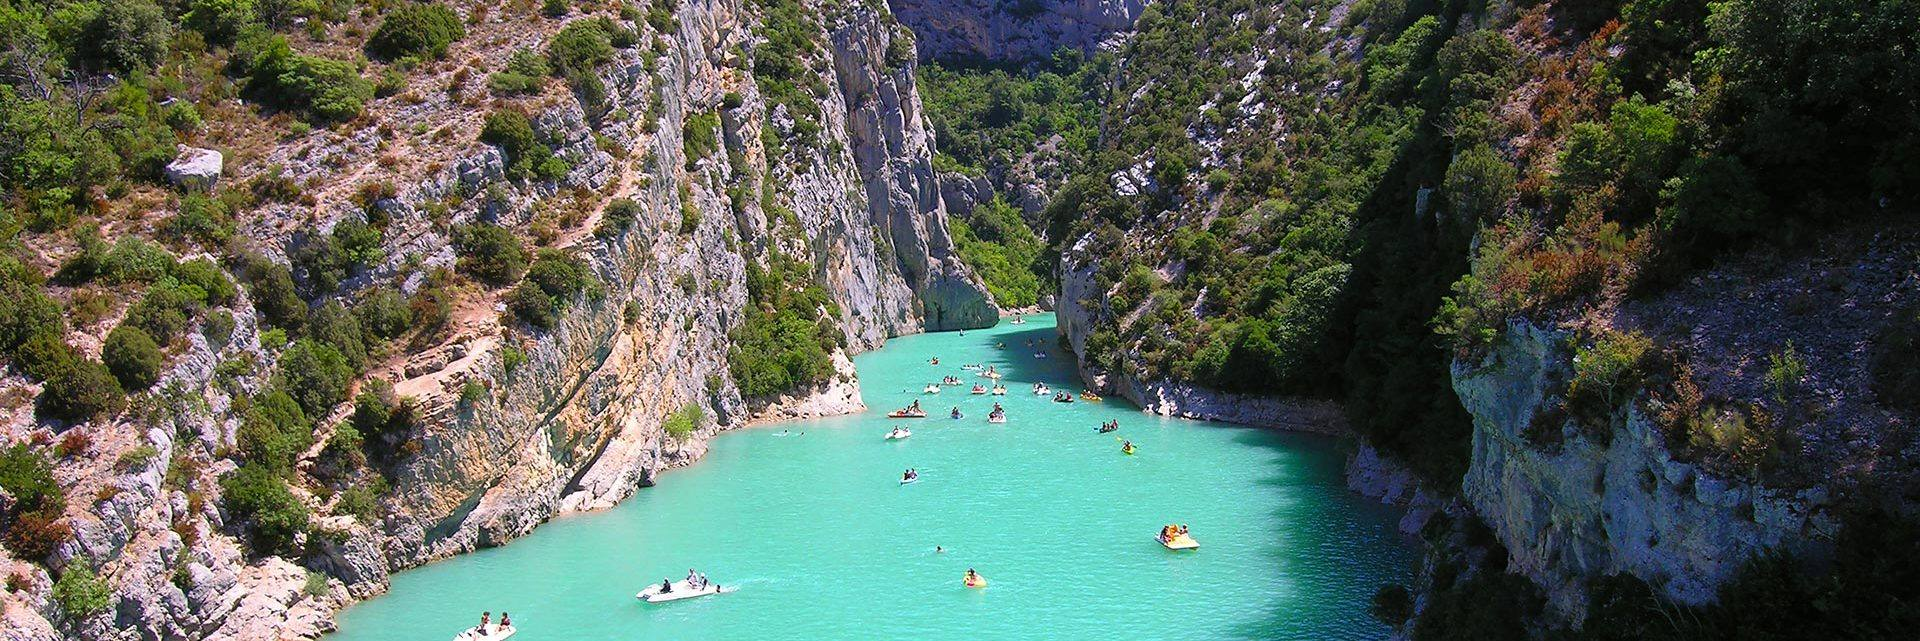 In the Verdon gorges